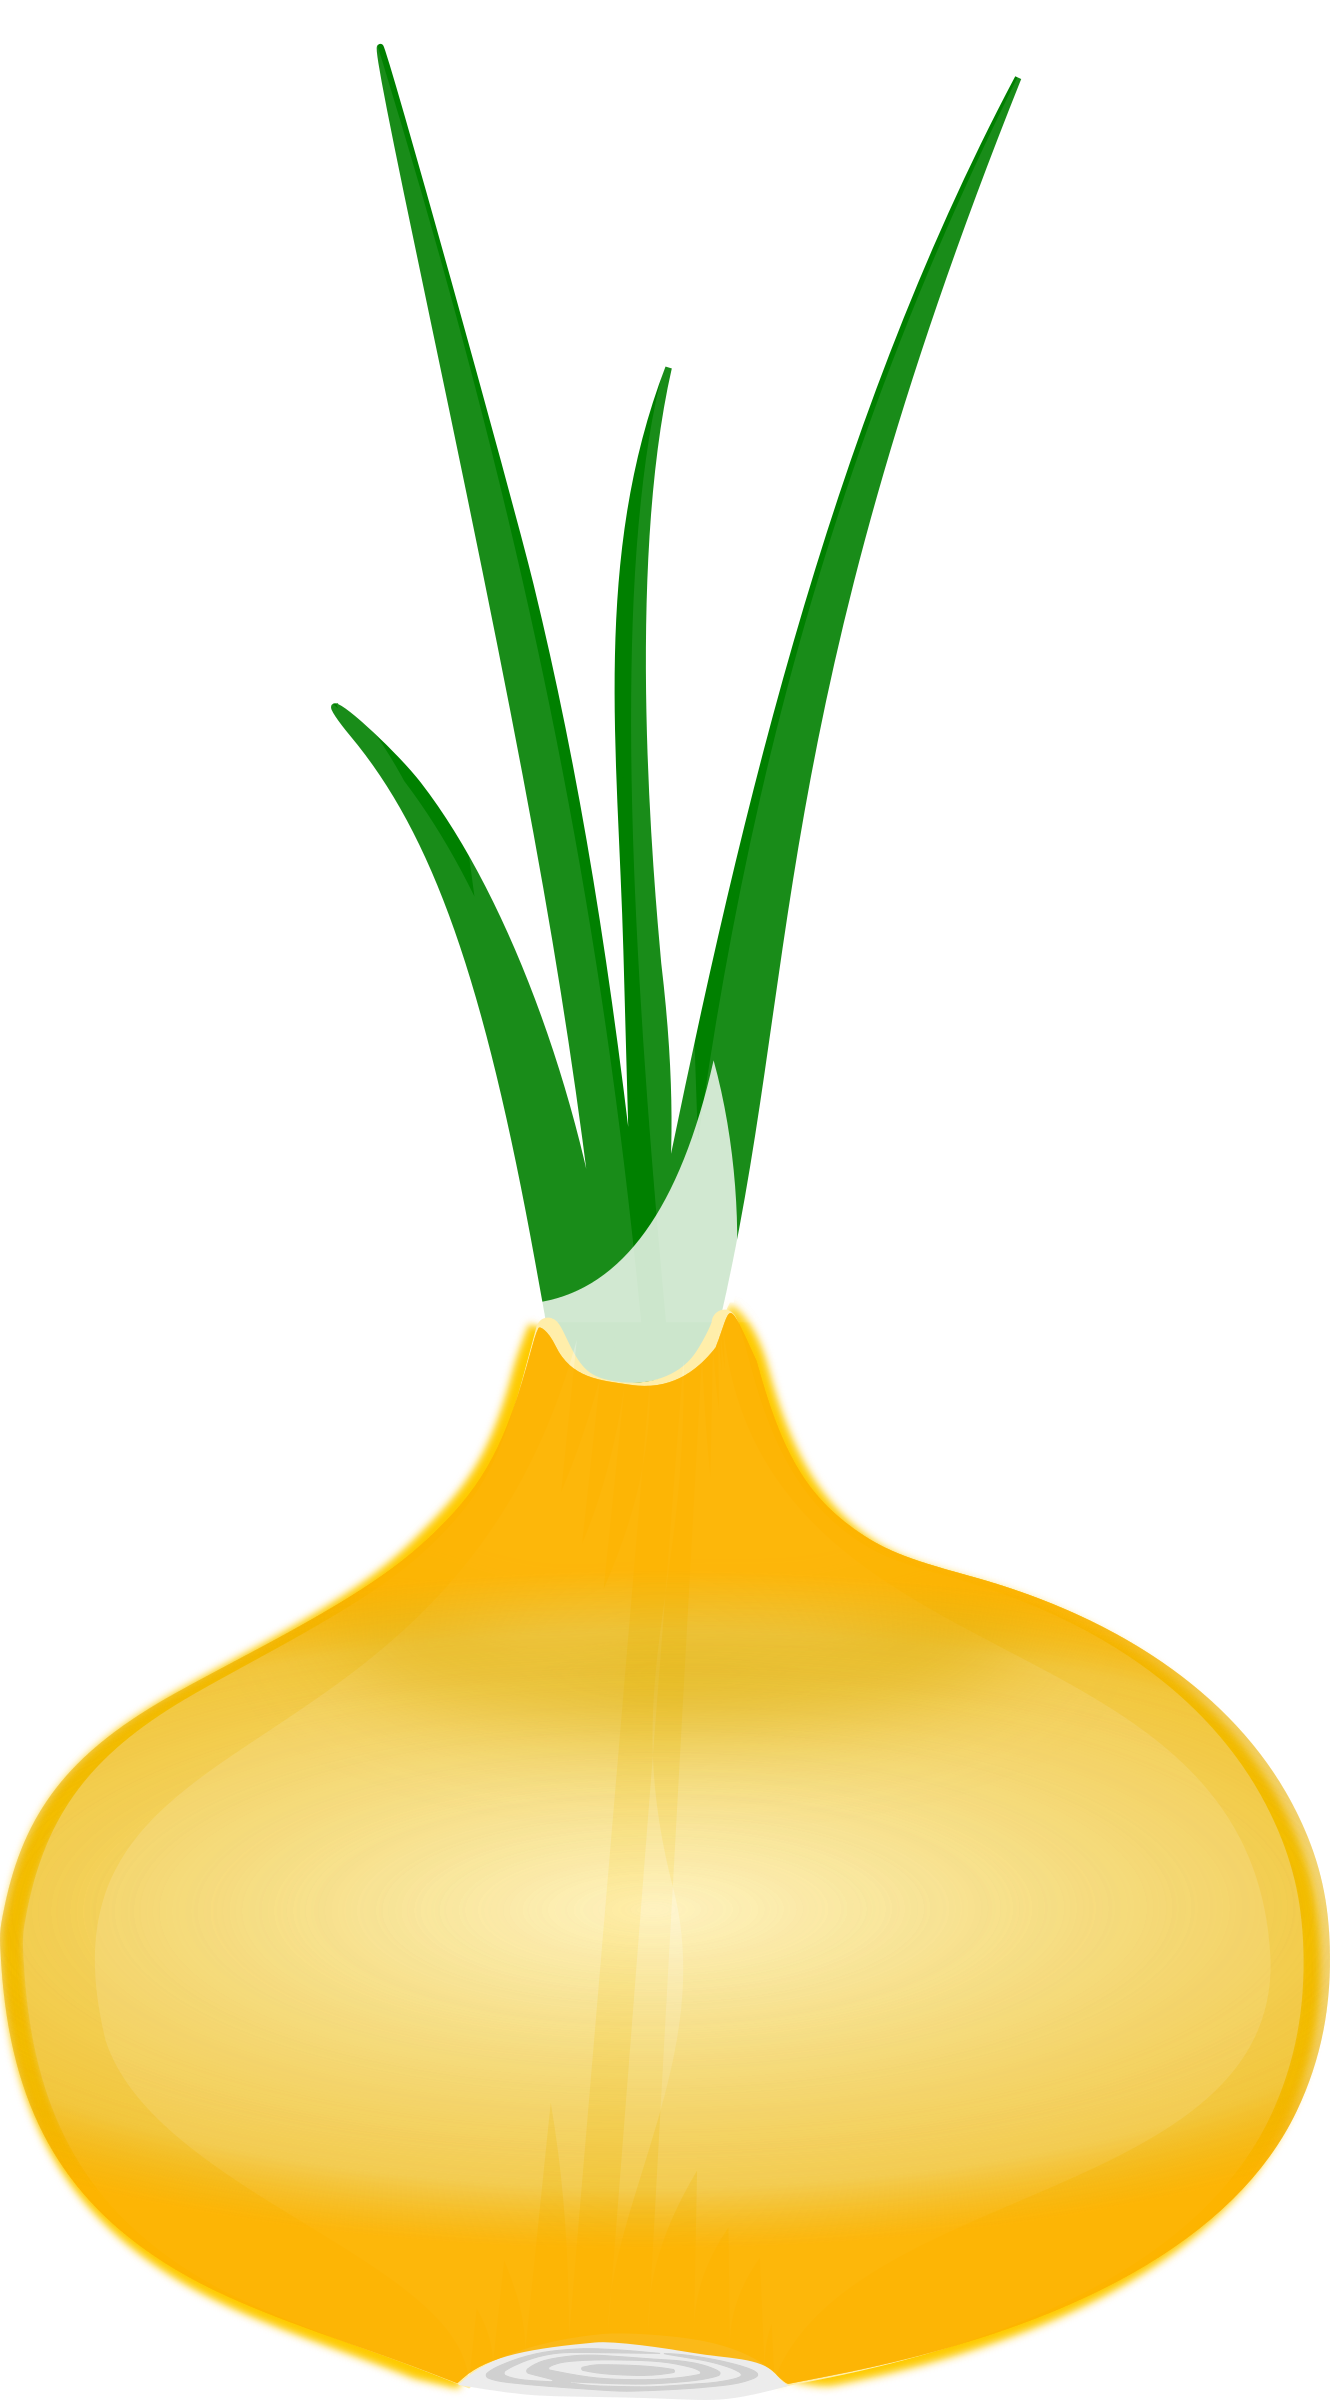 Onion clipart onion leaves. Big image png